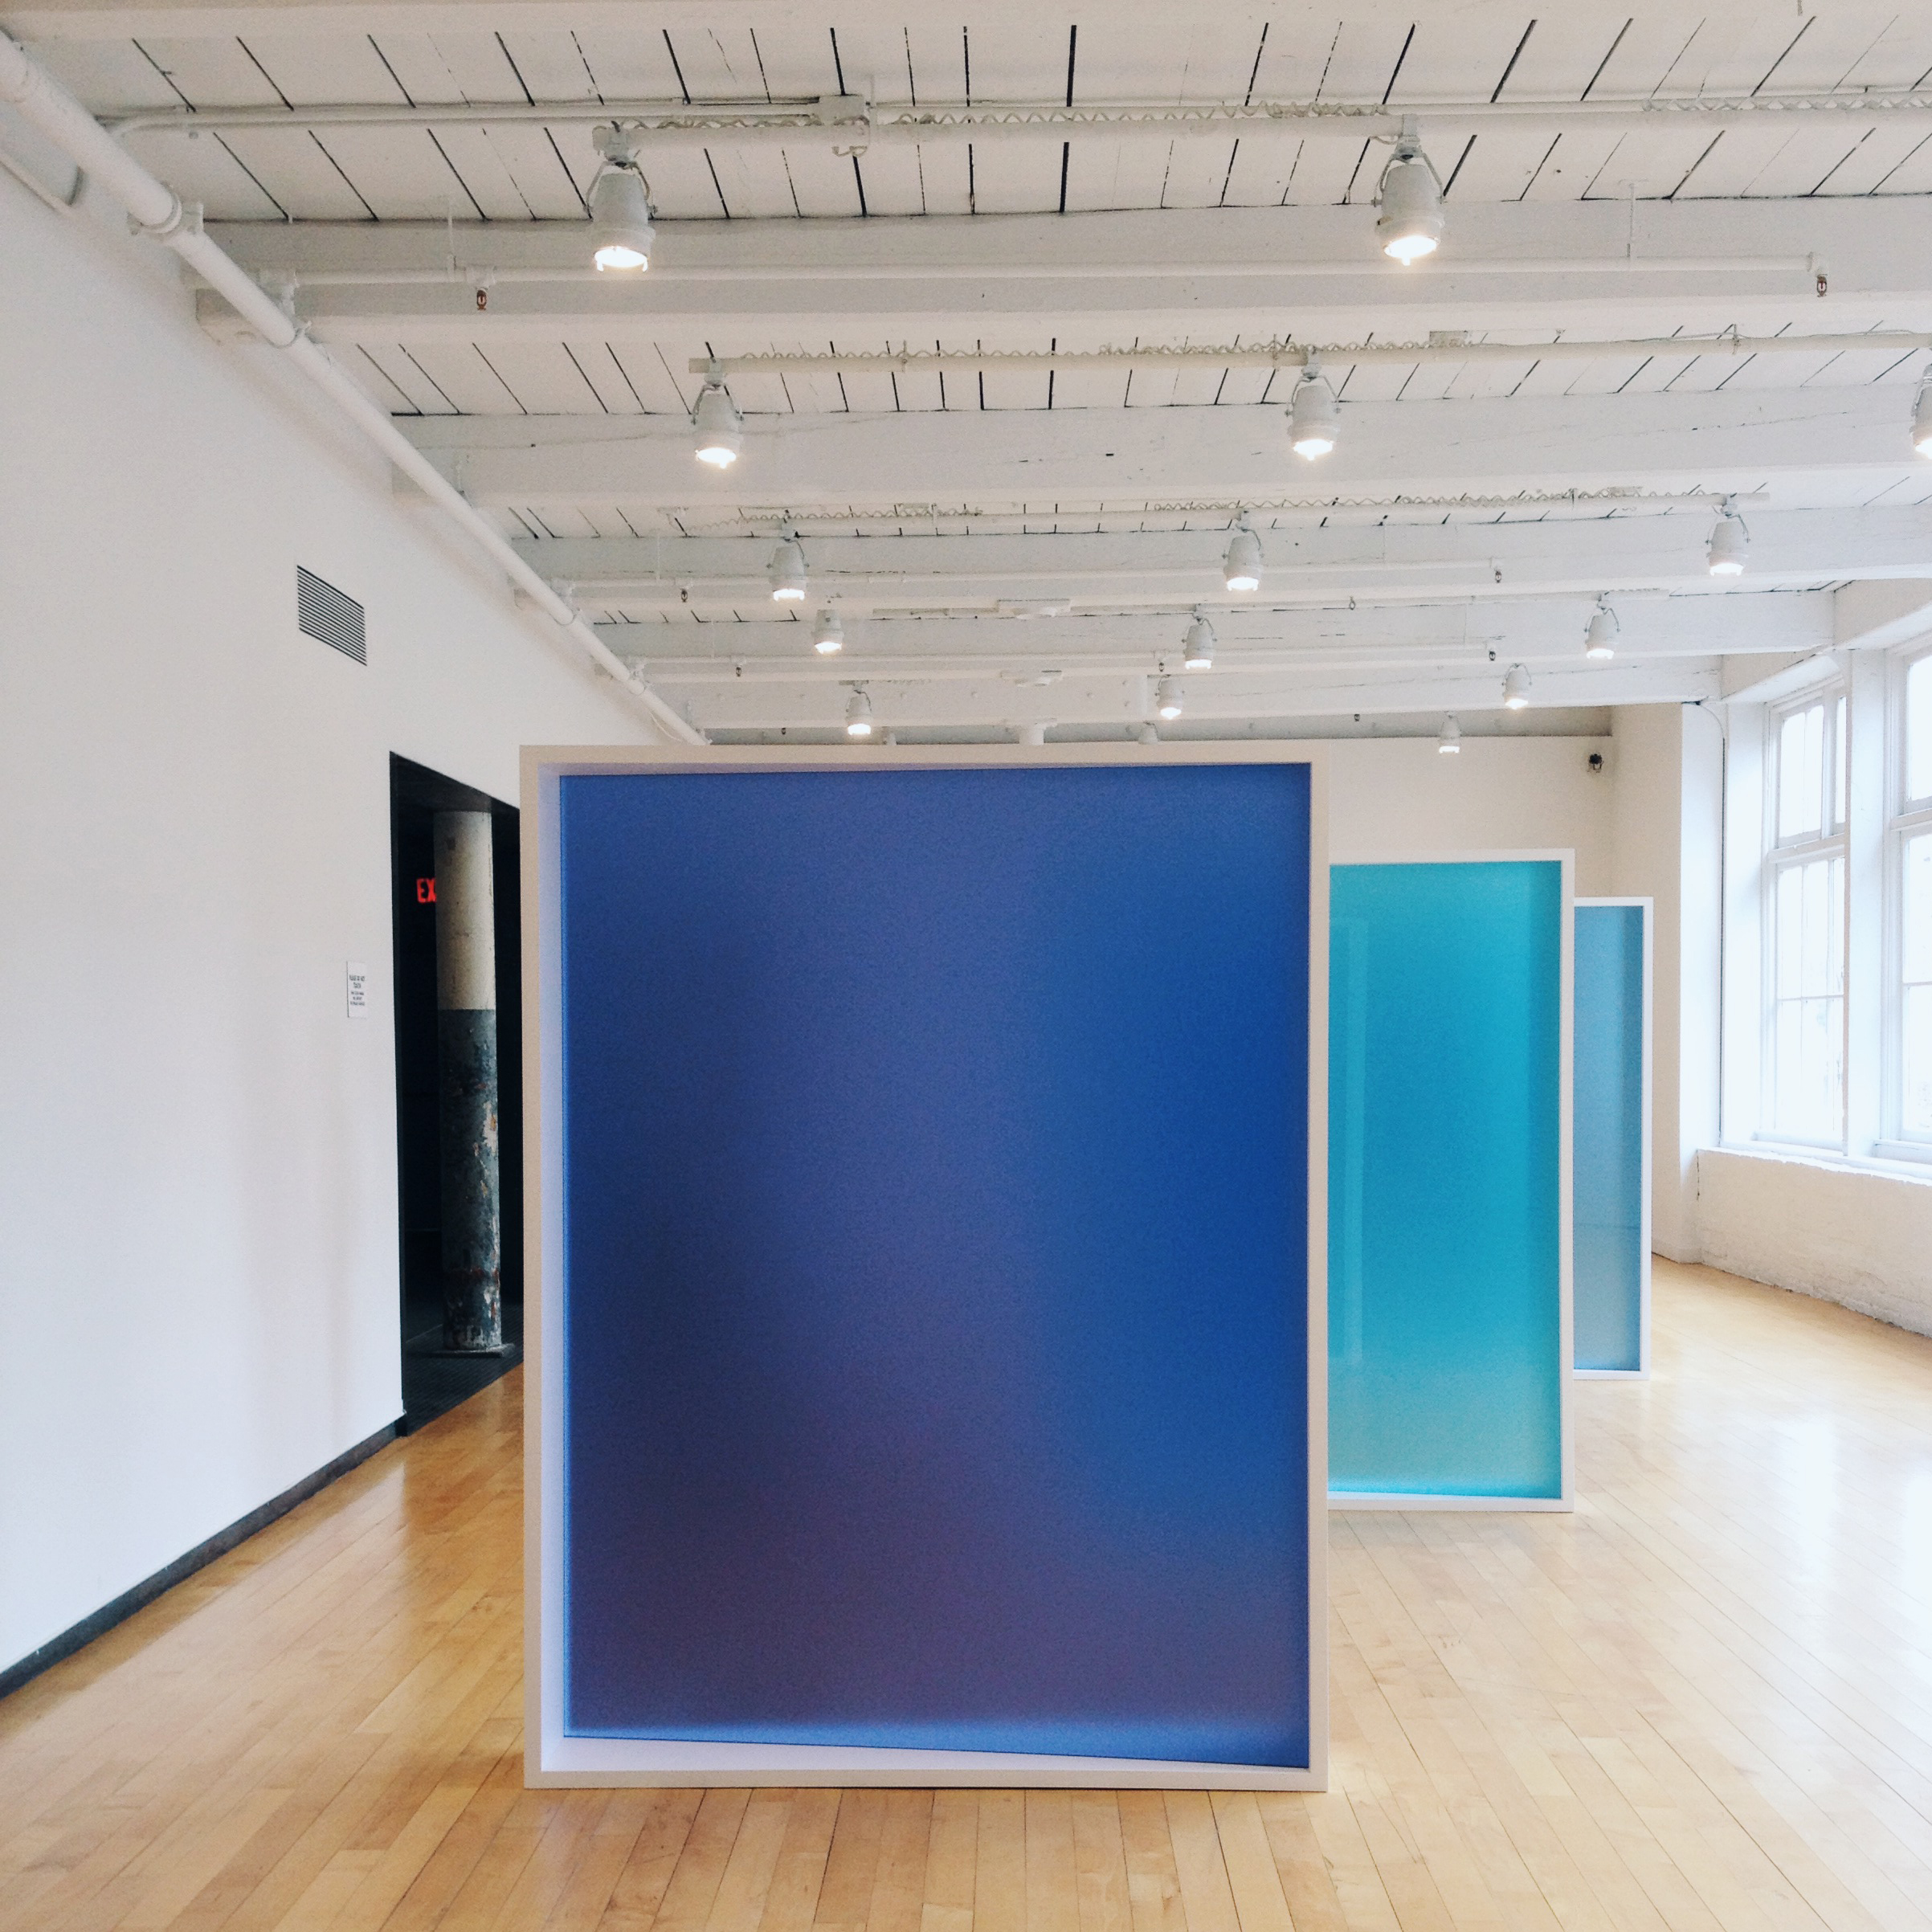 Gallery 4.1.1 at Mass MoCA